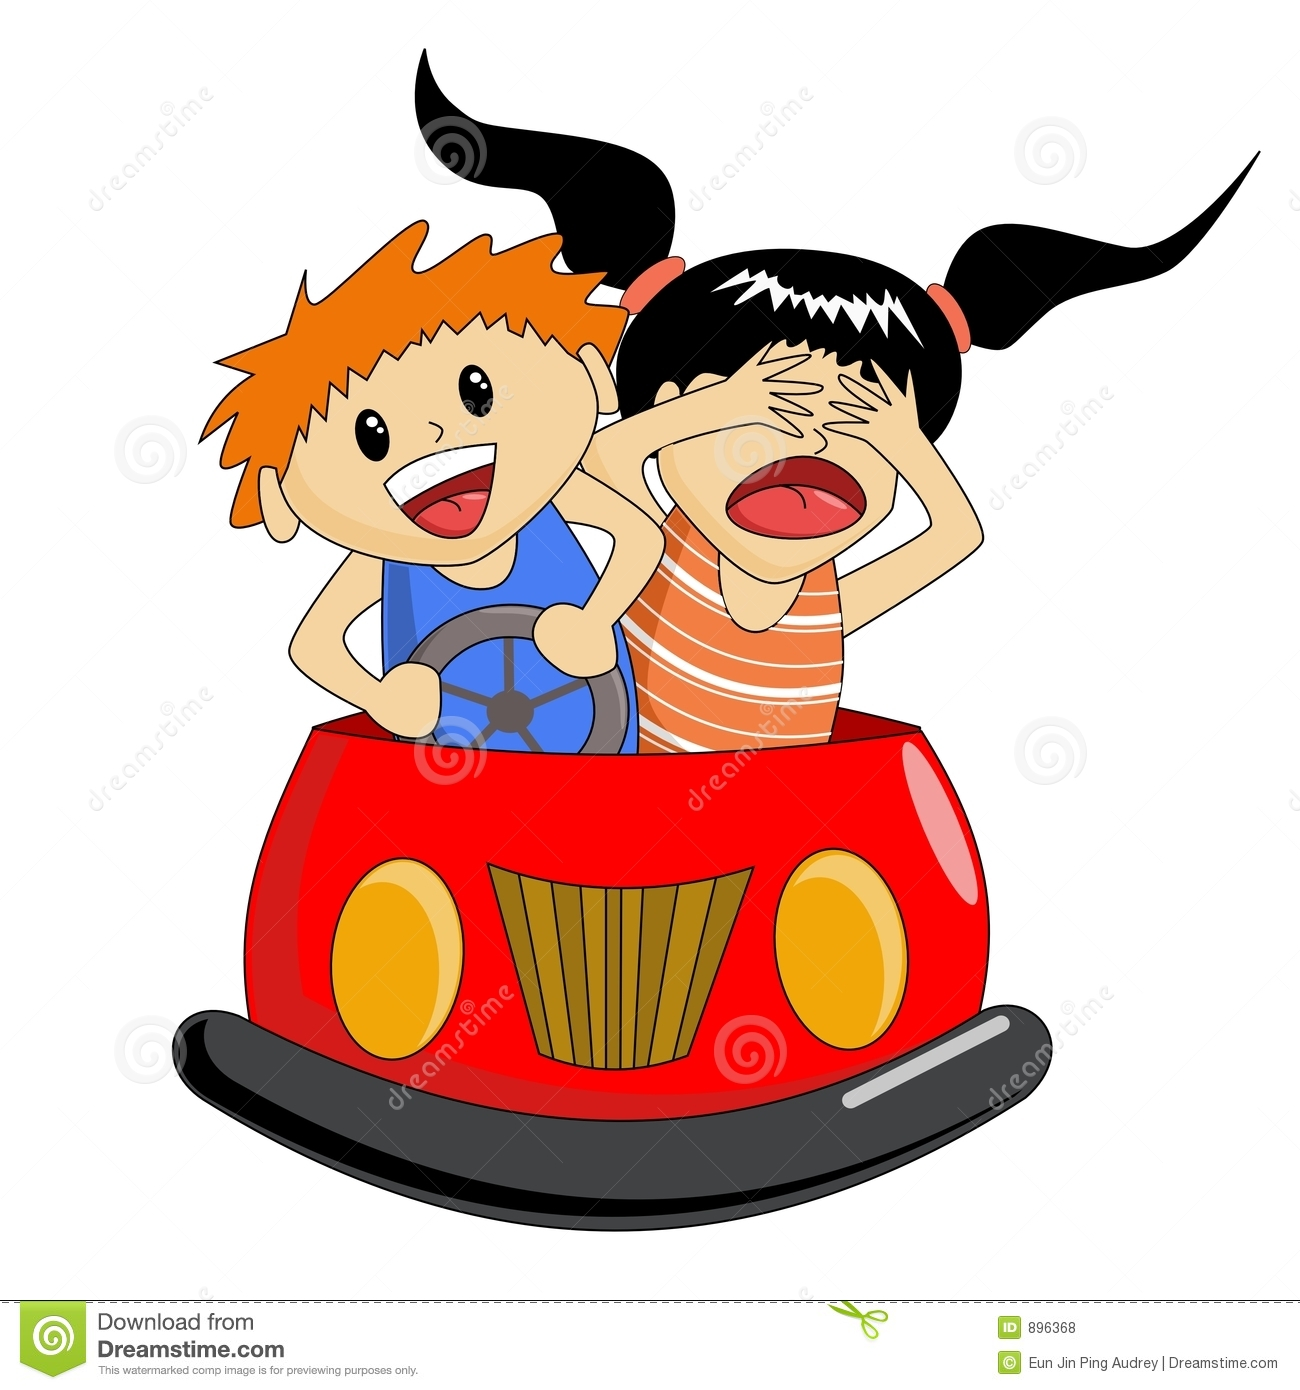 Bumper Car Ride Stock Vector. Image Of Couple, Ponytail